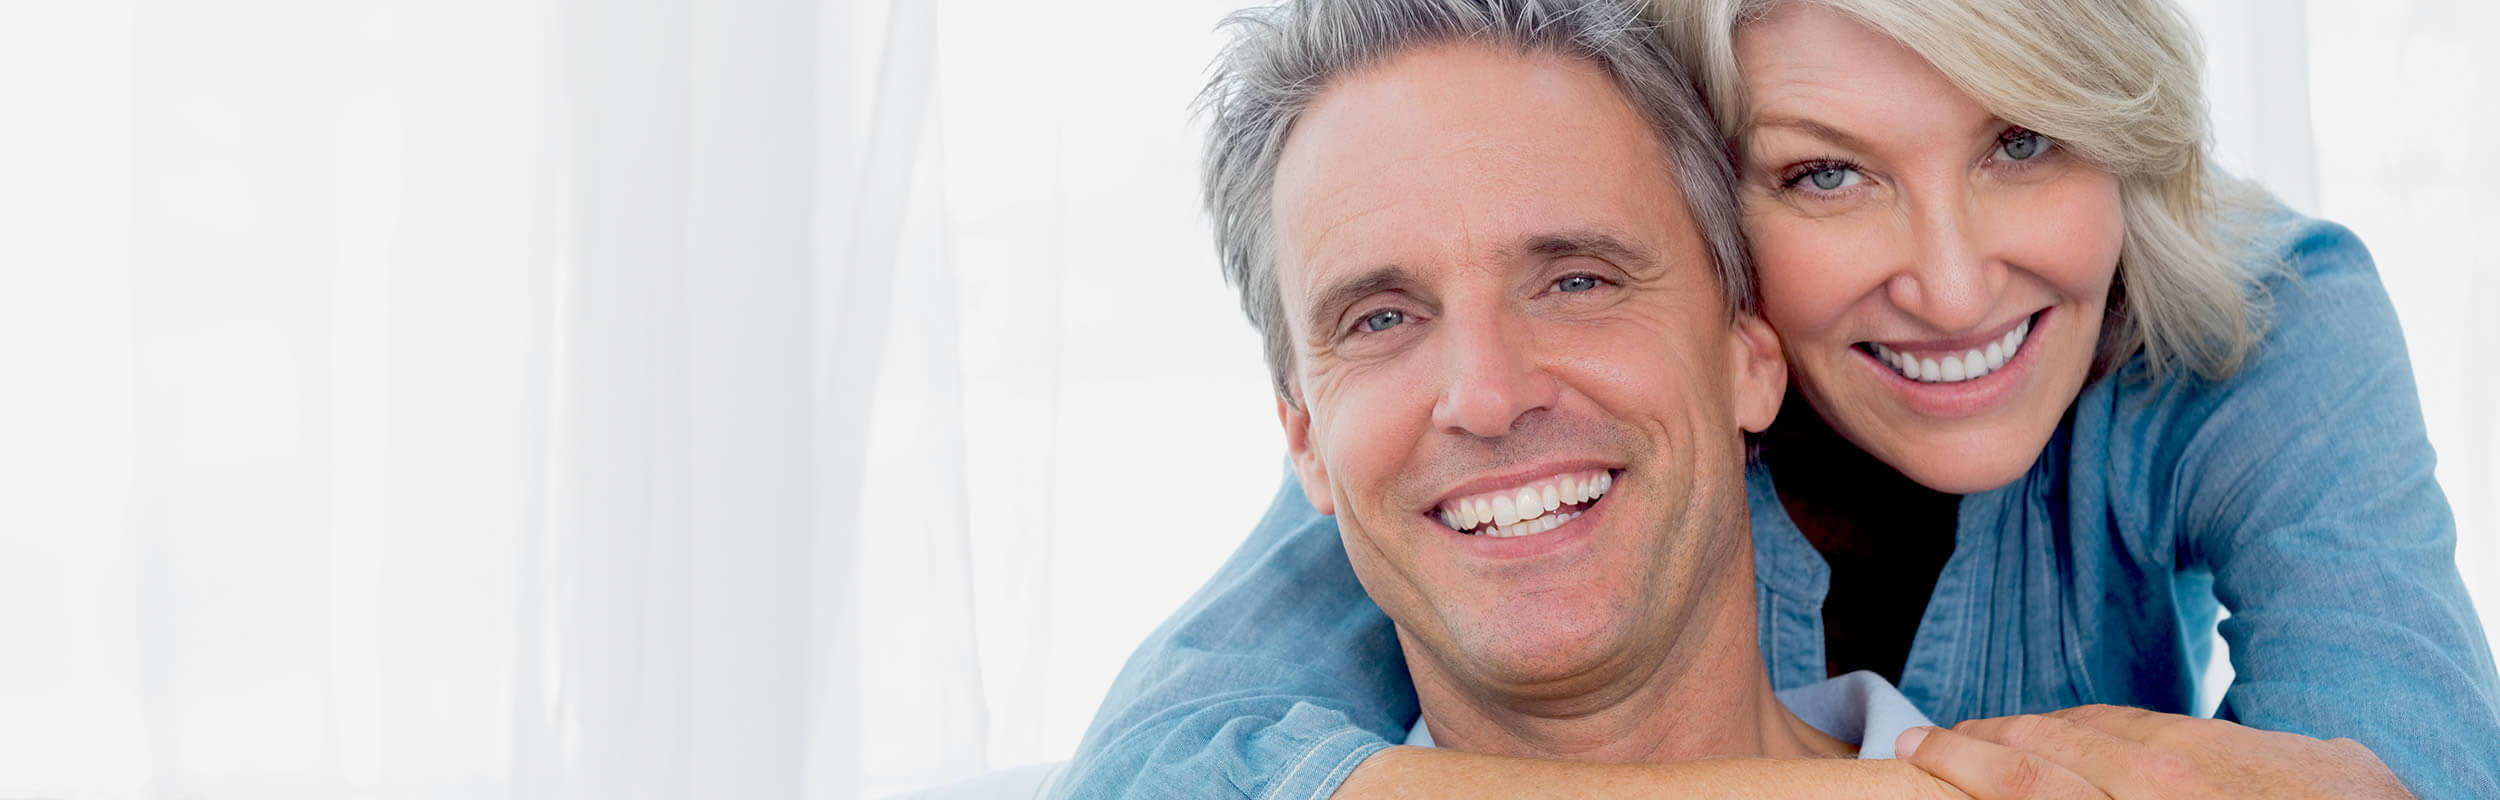 Preventive dentistry at Aura in Kingston and Wimbledon